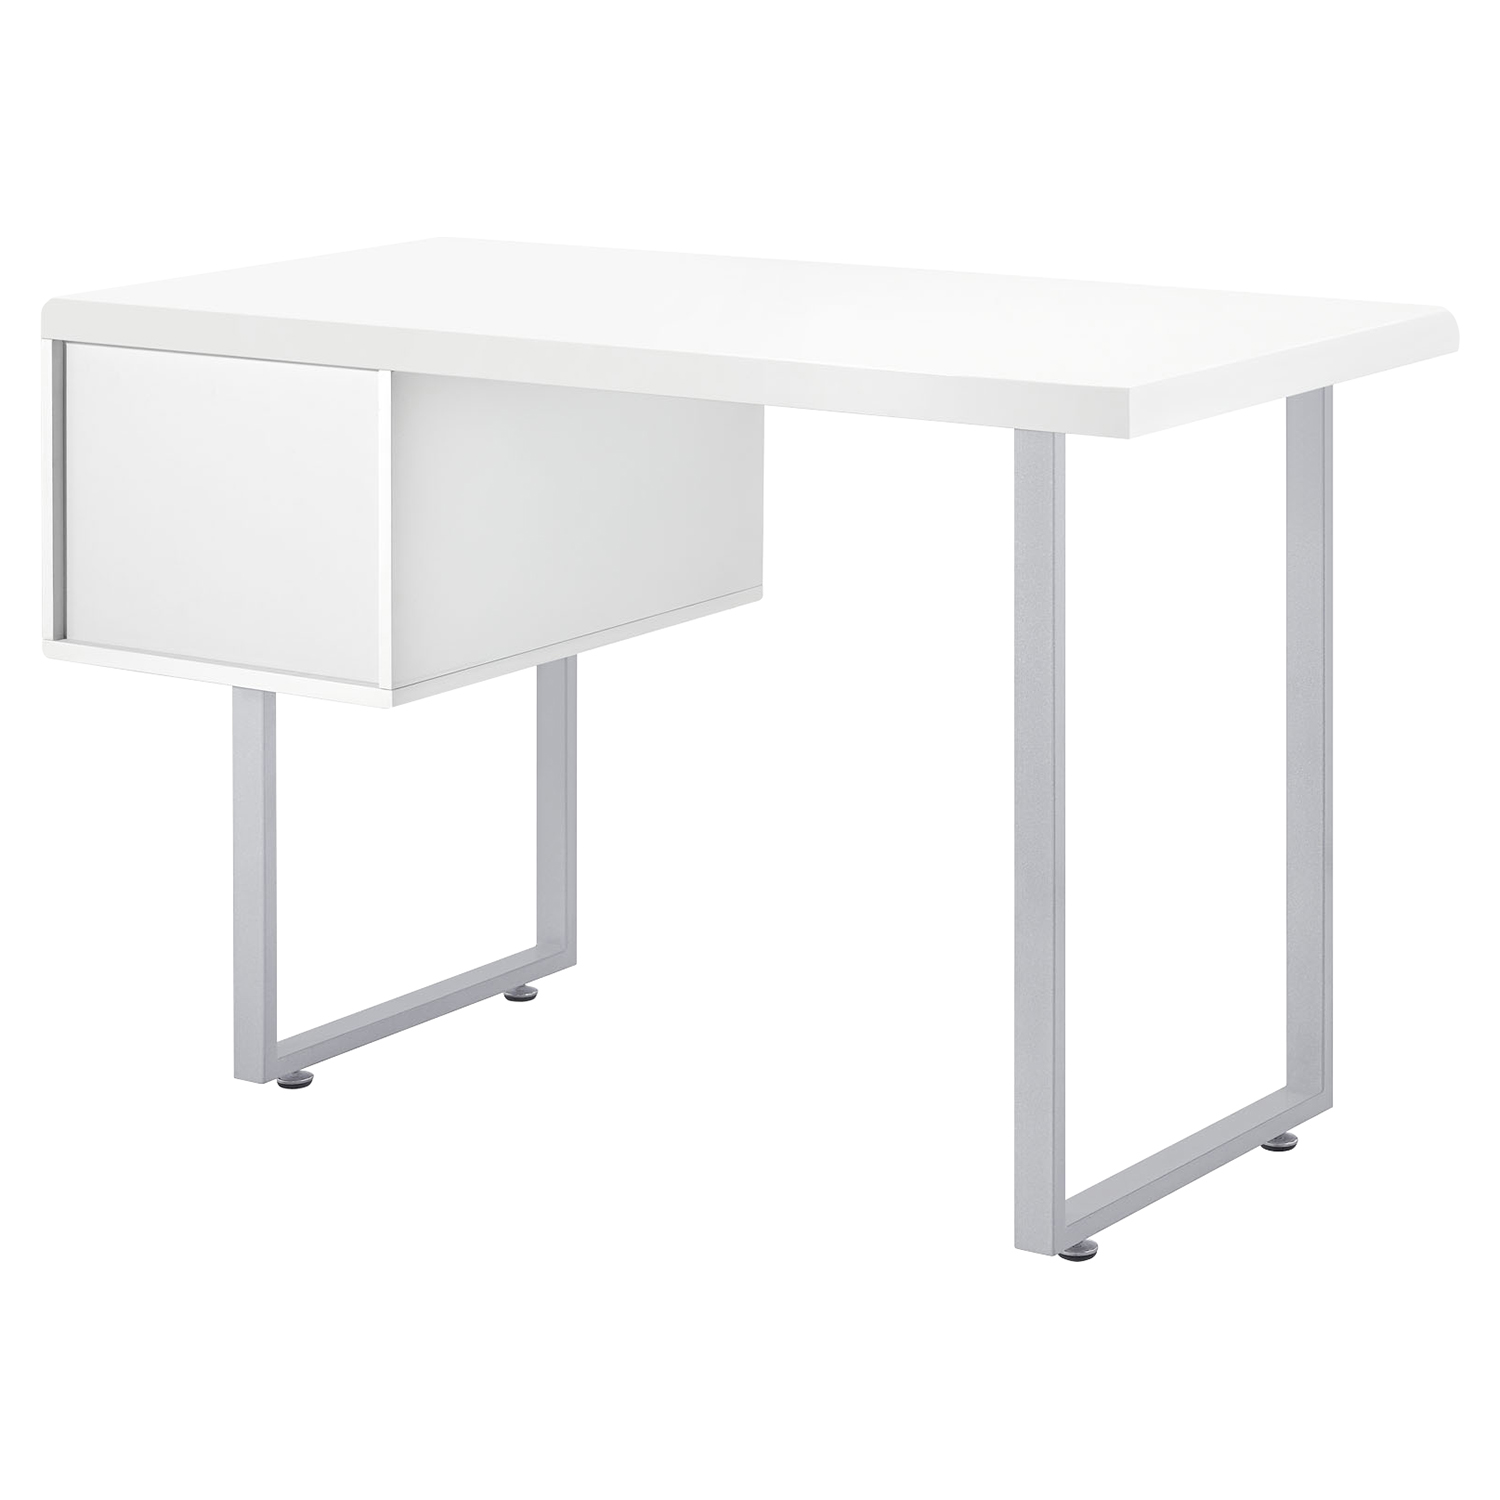 Turn 2 Drawers Office Desk - White - EEI-1184-WHI